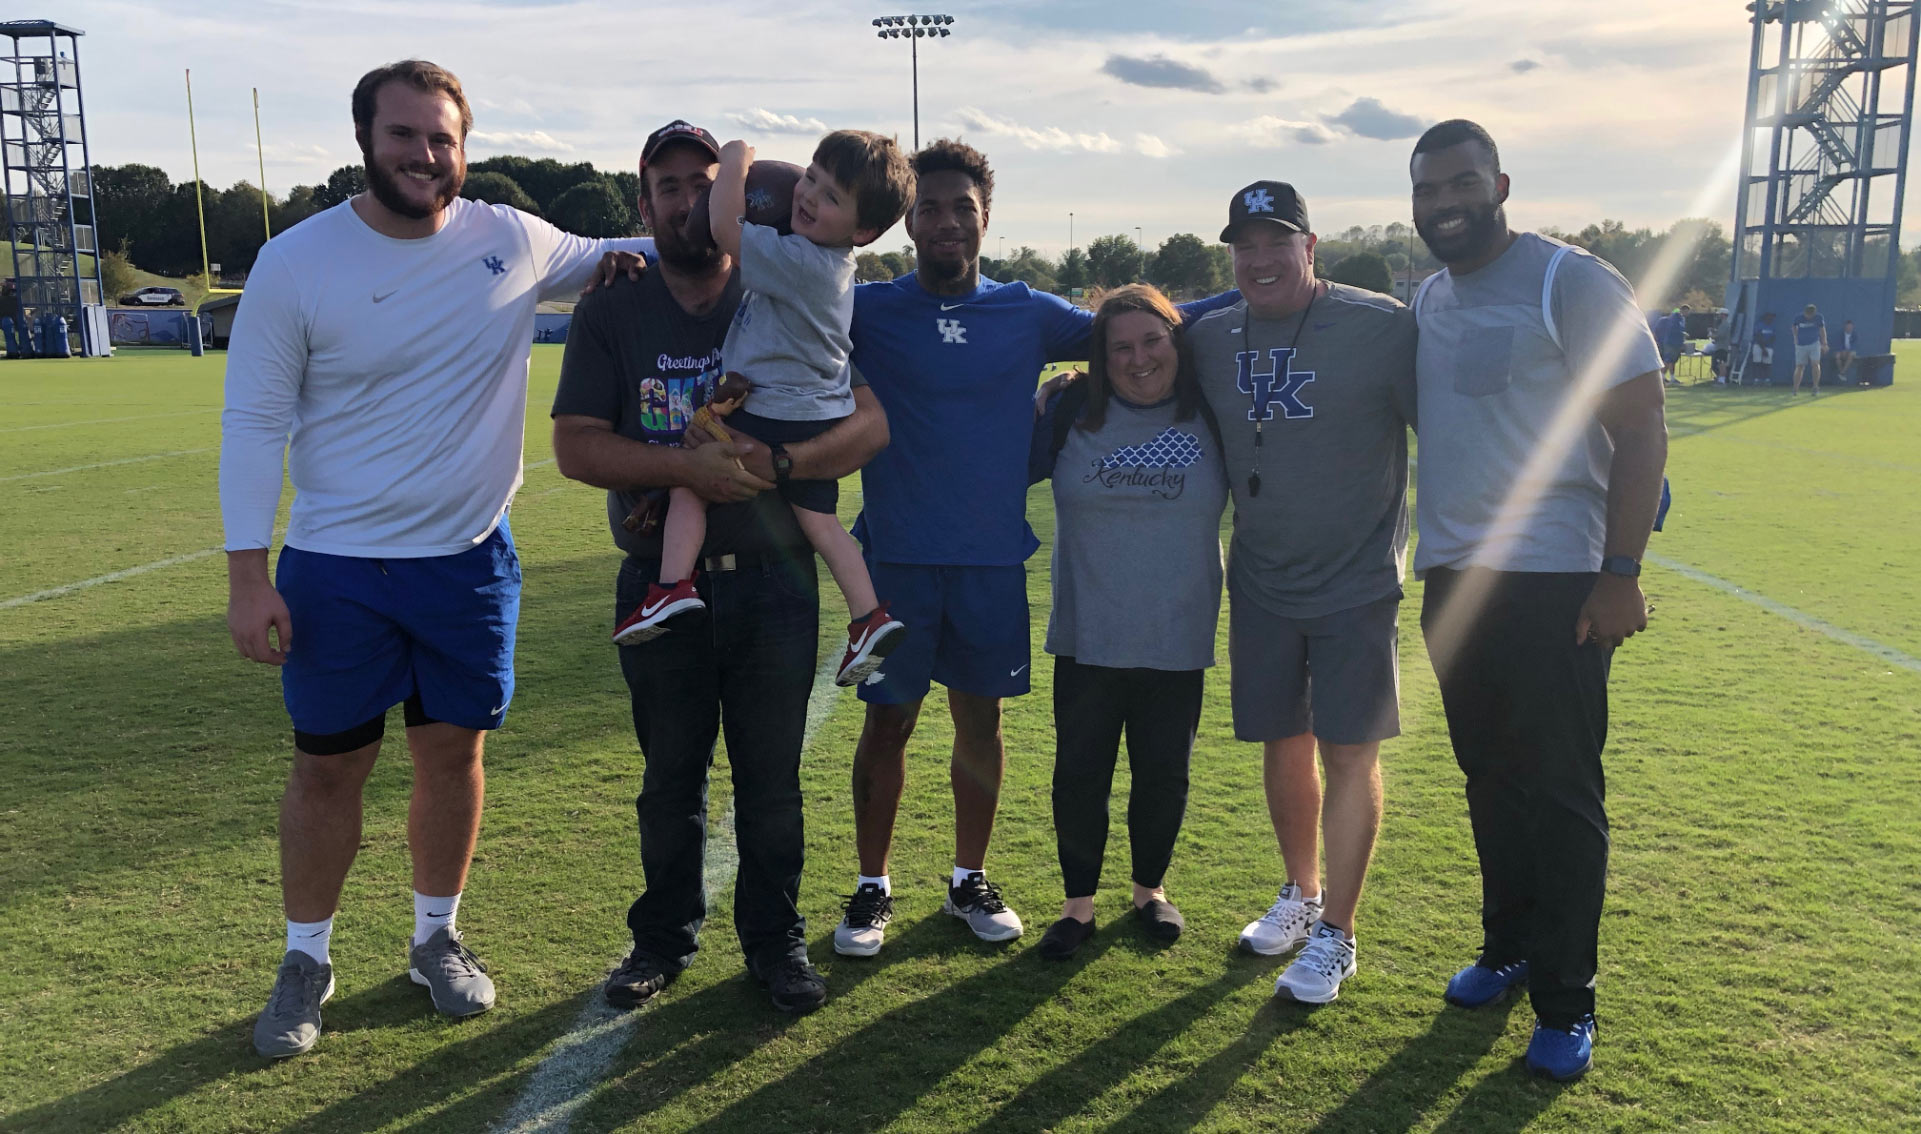 Six people pose for a photo on the football practice field. One man is holding Kase Chaney, an active kid who is holding a football. Coach Stoops, Courtney, and Luke are all in the photo, along with Kase's parents.